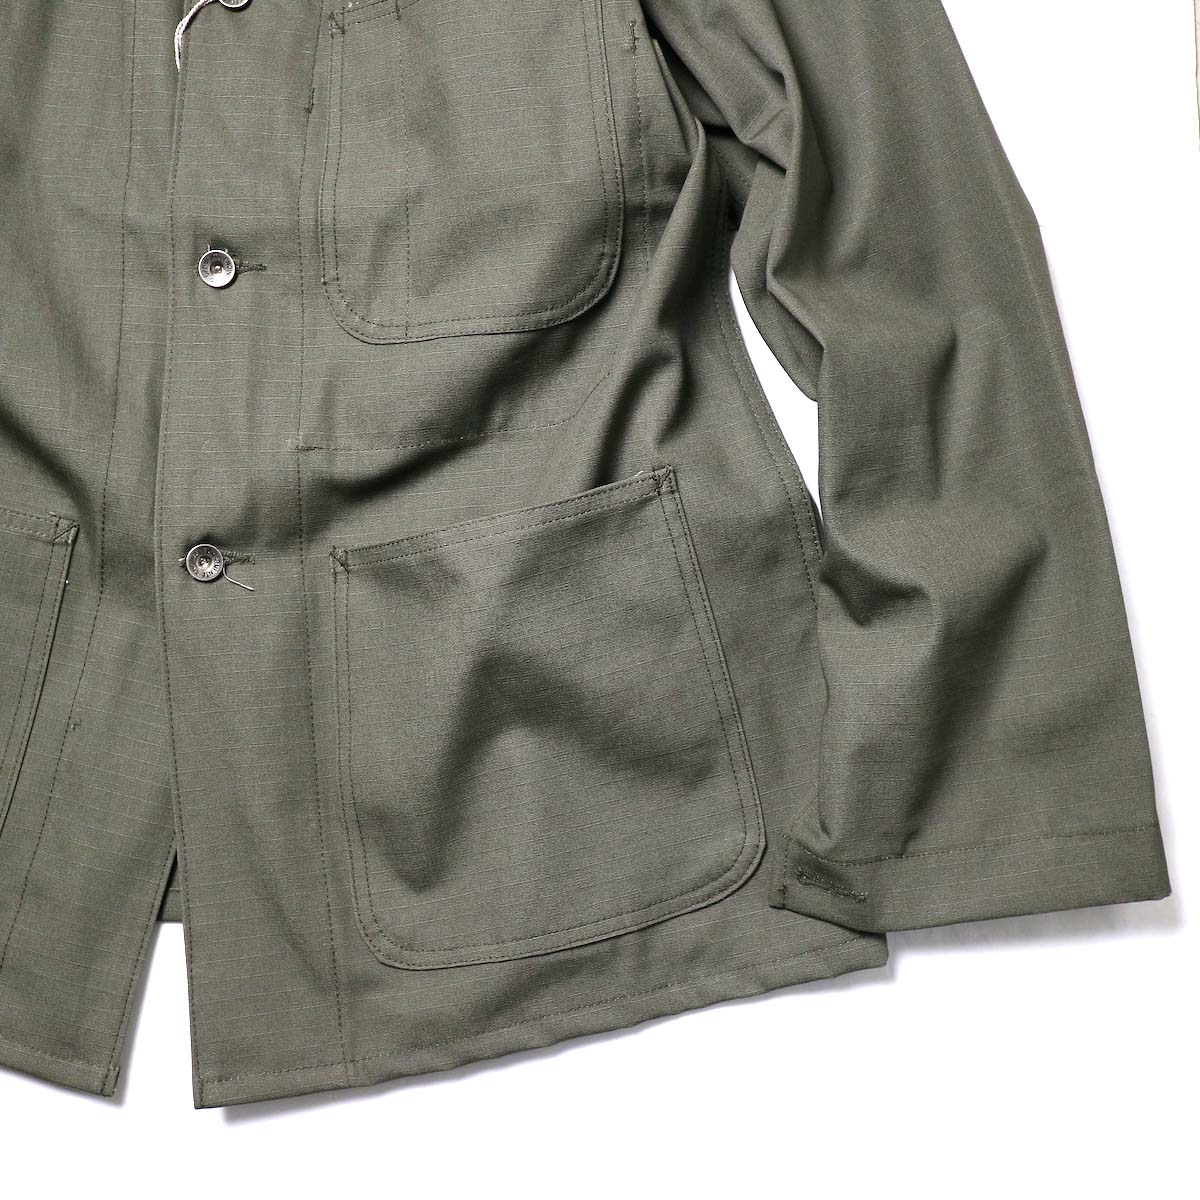 Engineered Garments Workaday / Utility Jacket - Cotton Ripstop (Olive)袖、裾